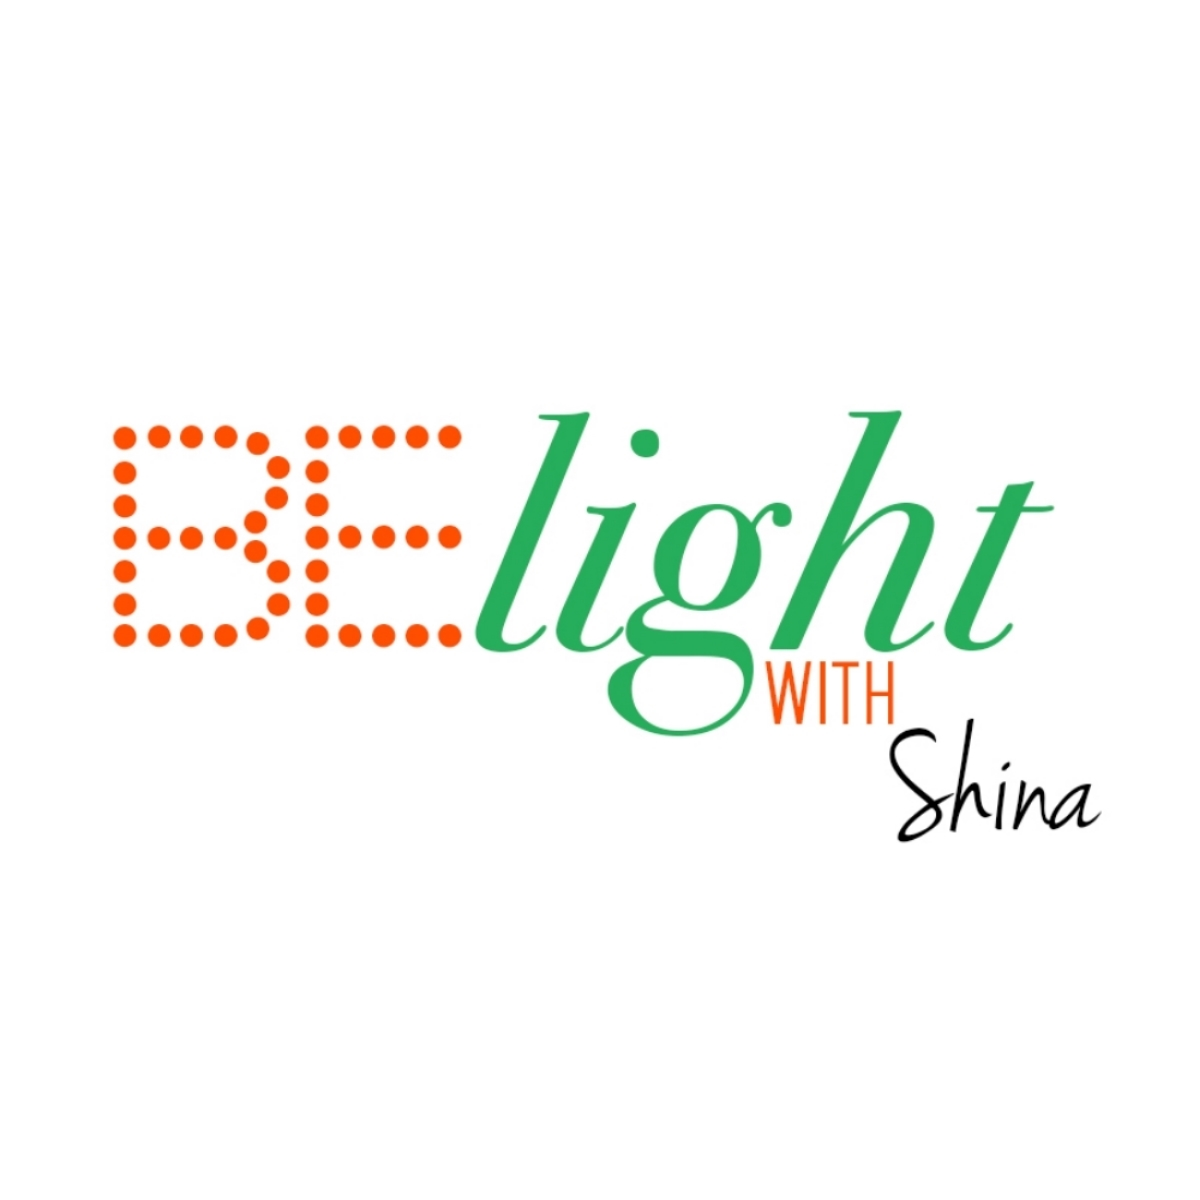 Be Light with Shina